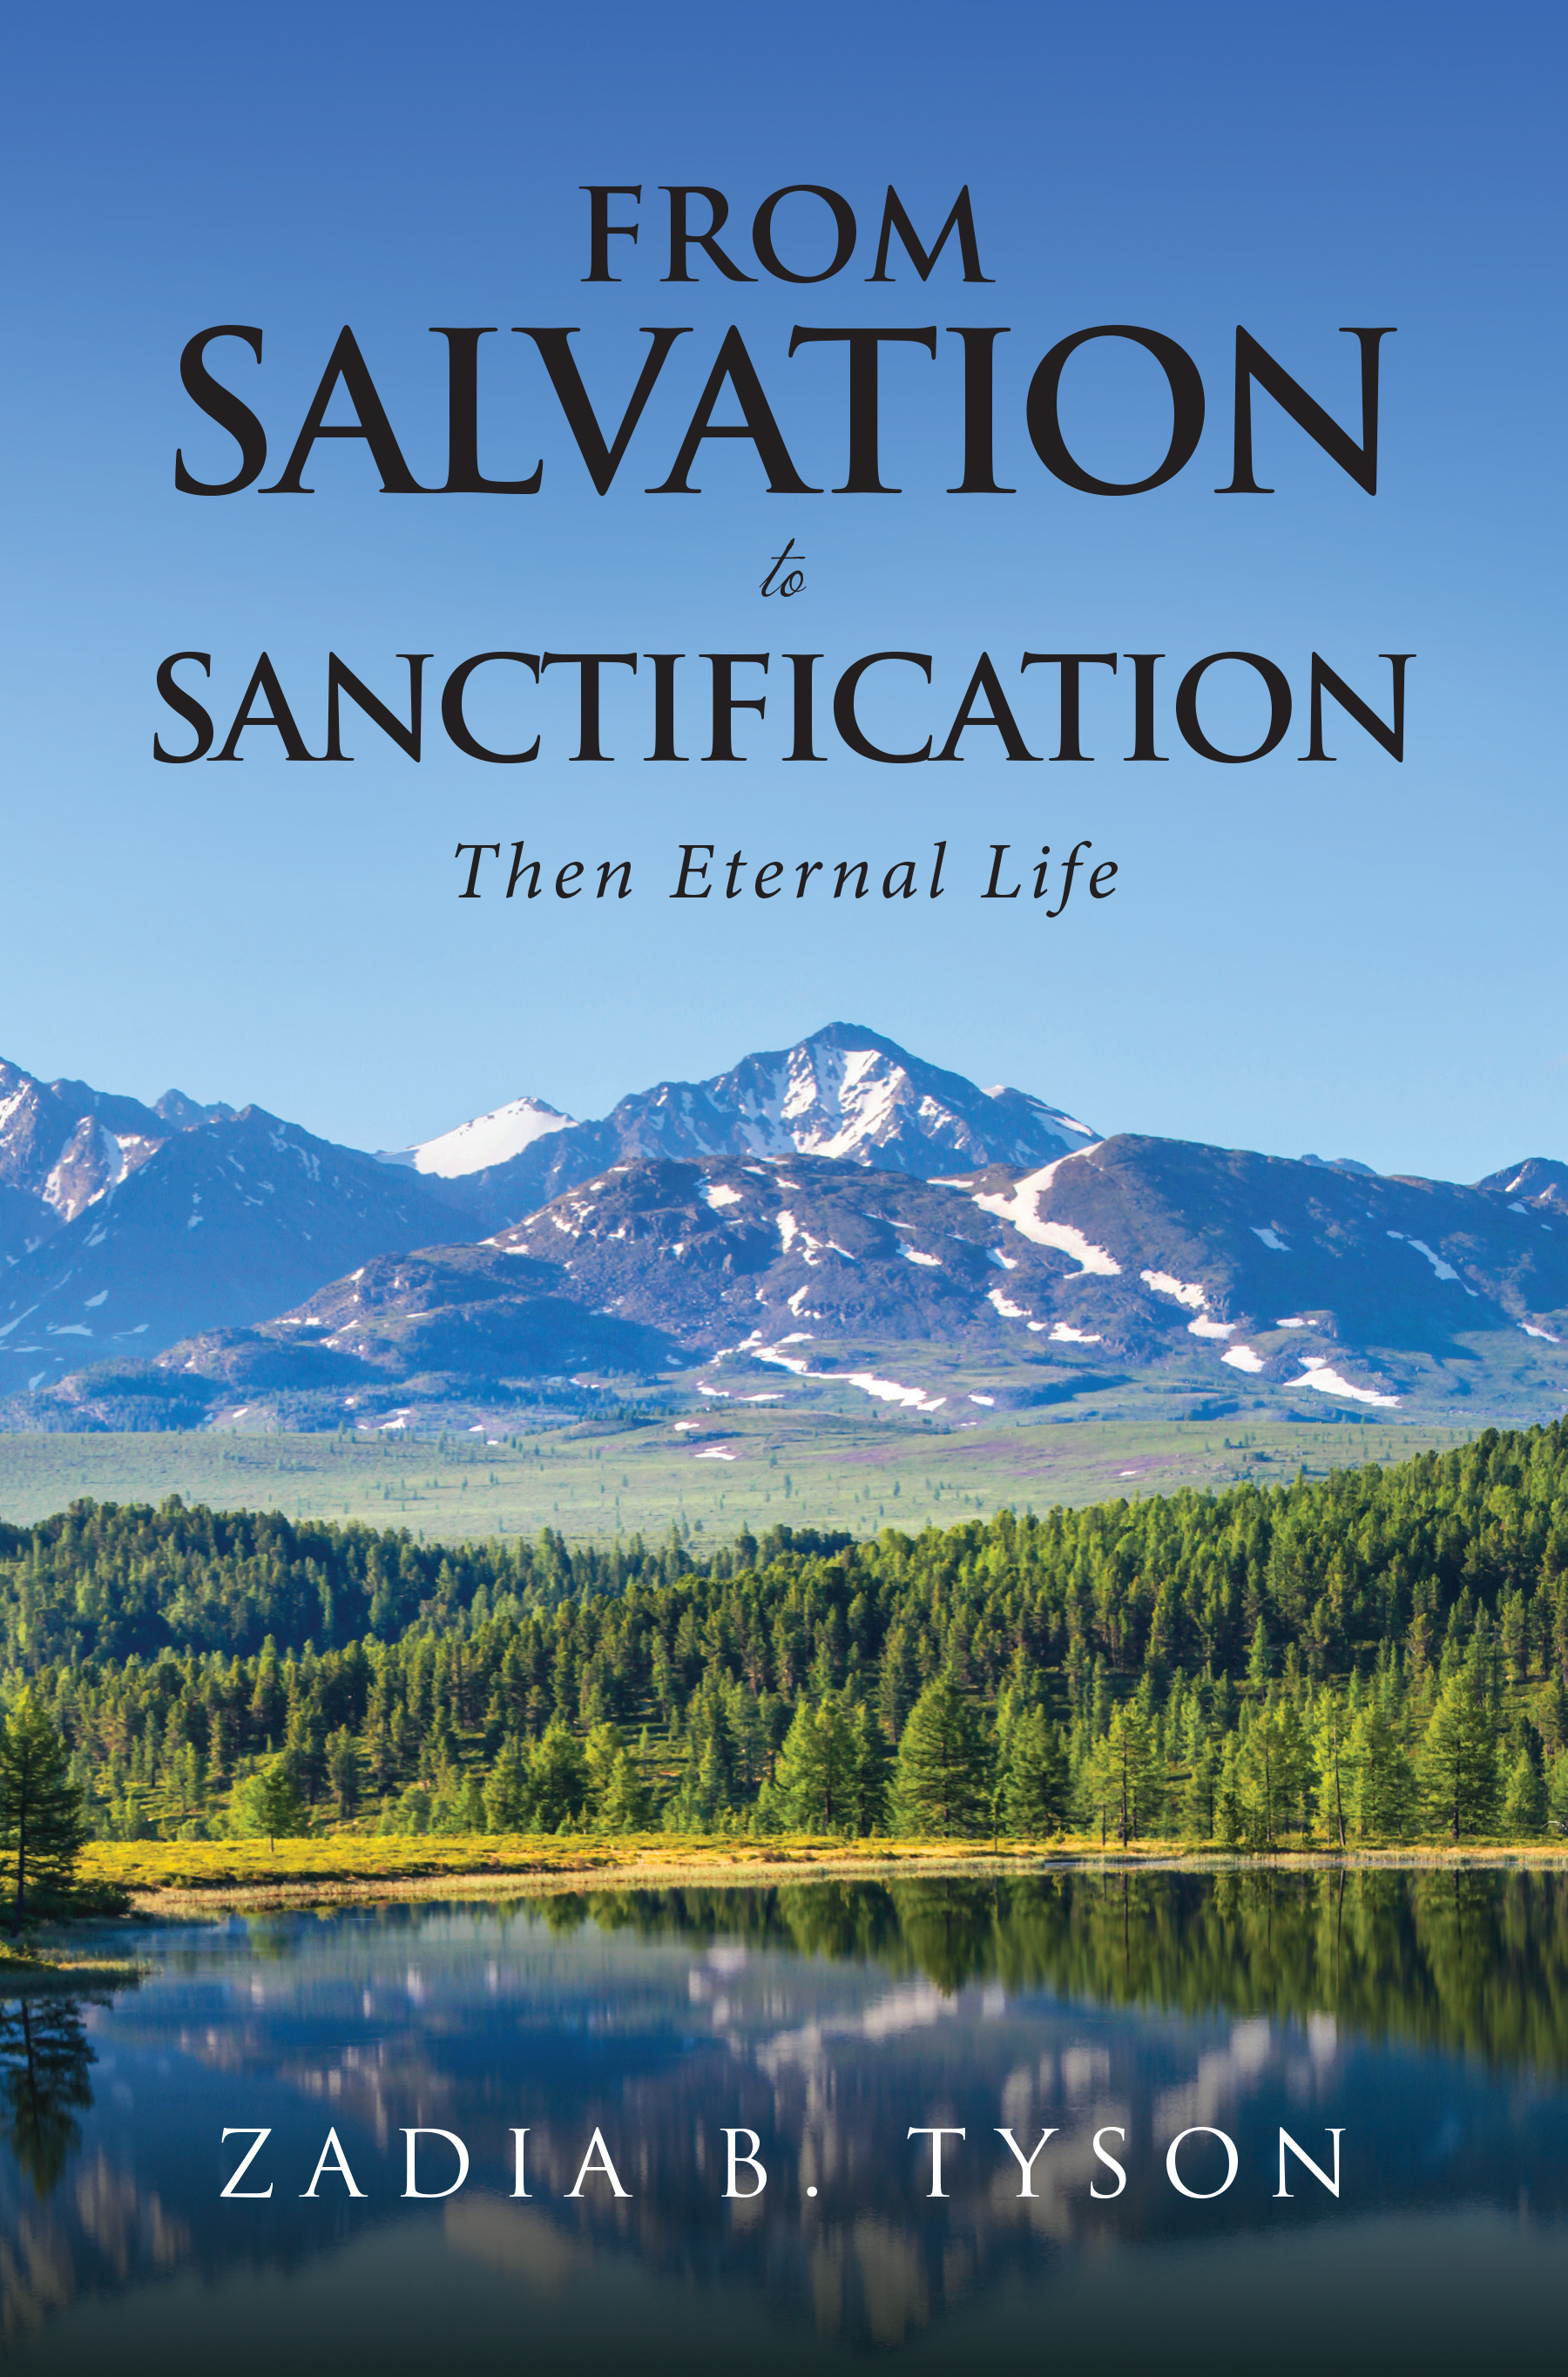 From Salvation To Sanctification: Then Eternal Life by Zadia B. Tyson